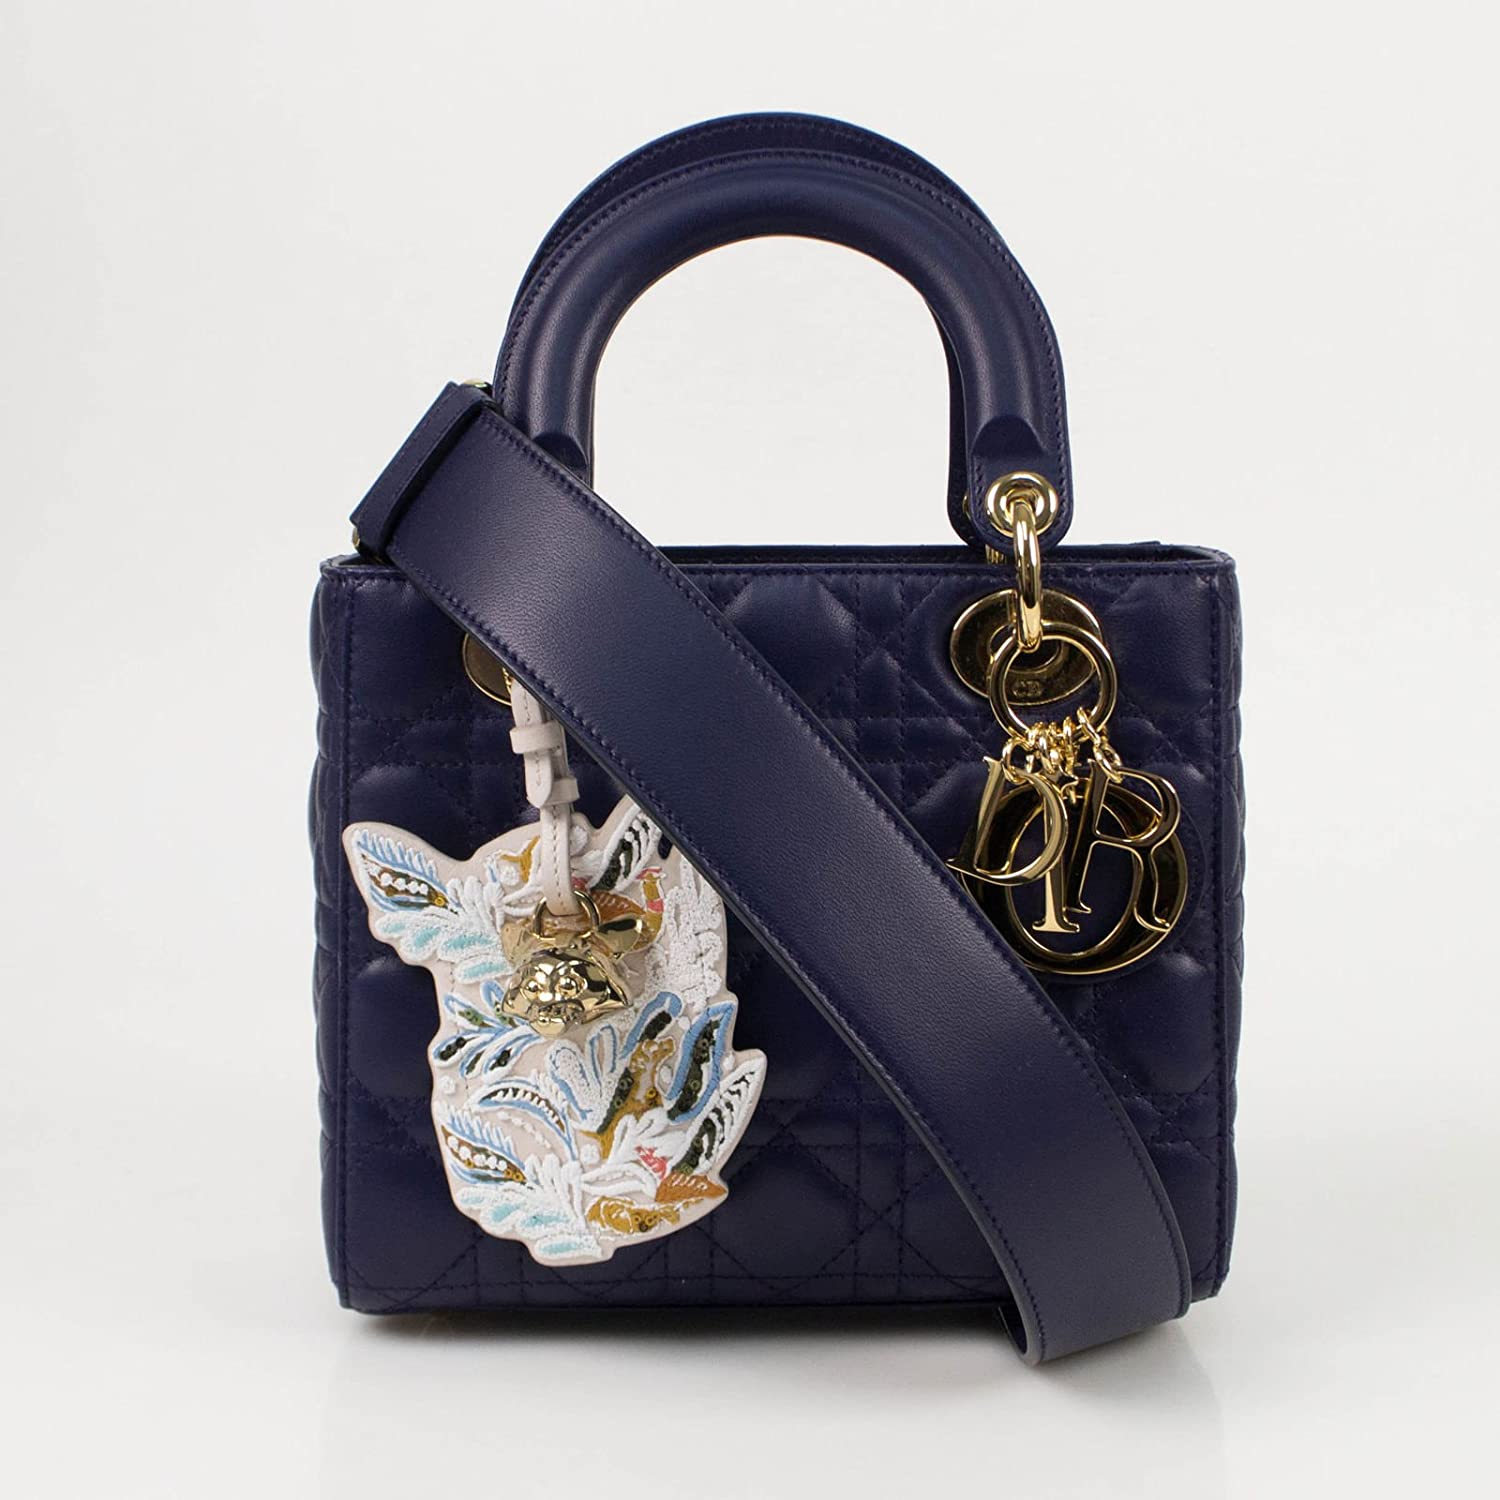 61d26bf9a3 Amazon.com: Christian Dior 'Lady Dior' Blue Cannage Leather Shoulder Bag:  Baby